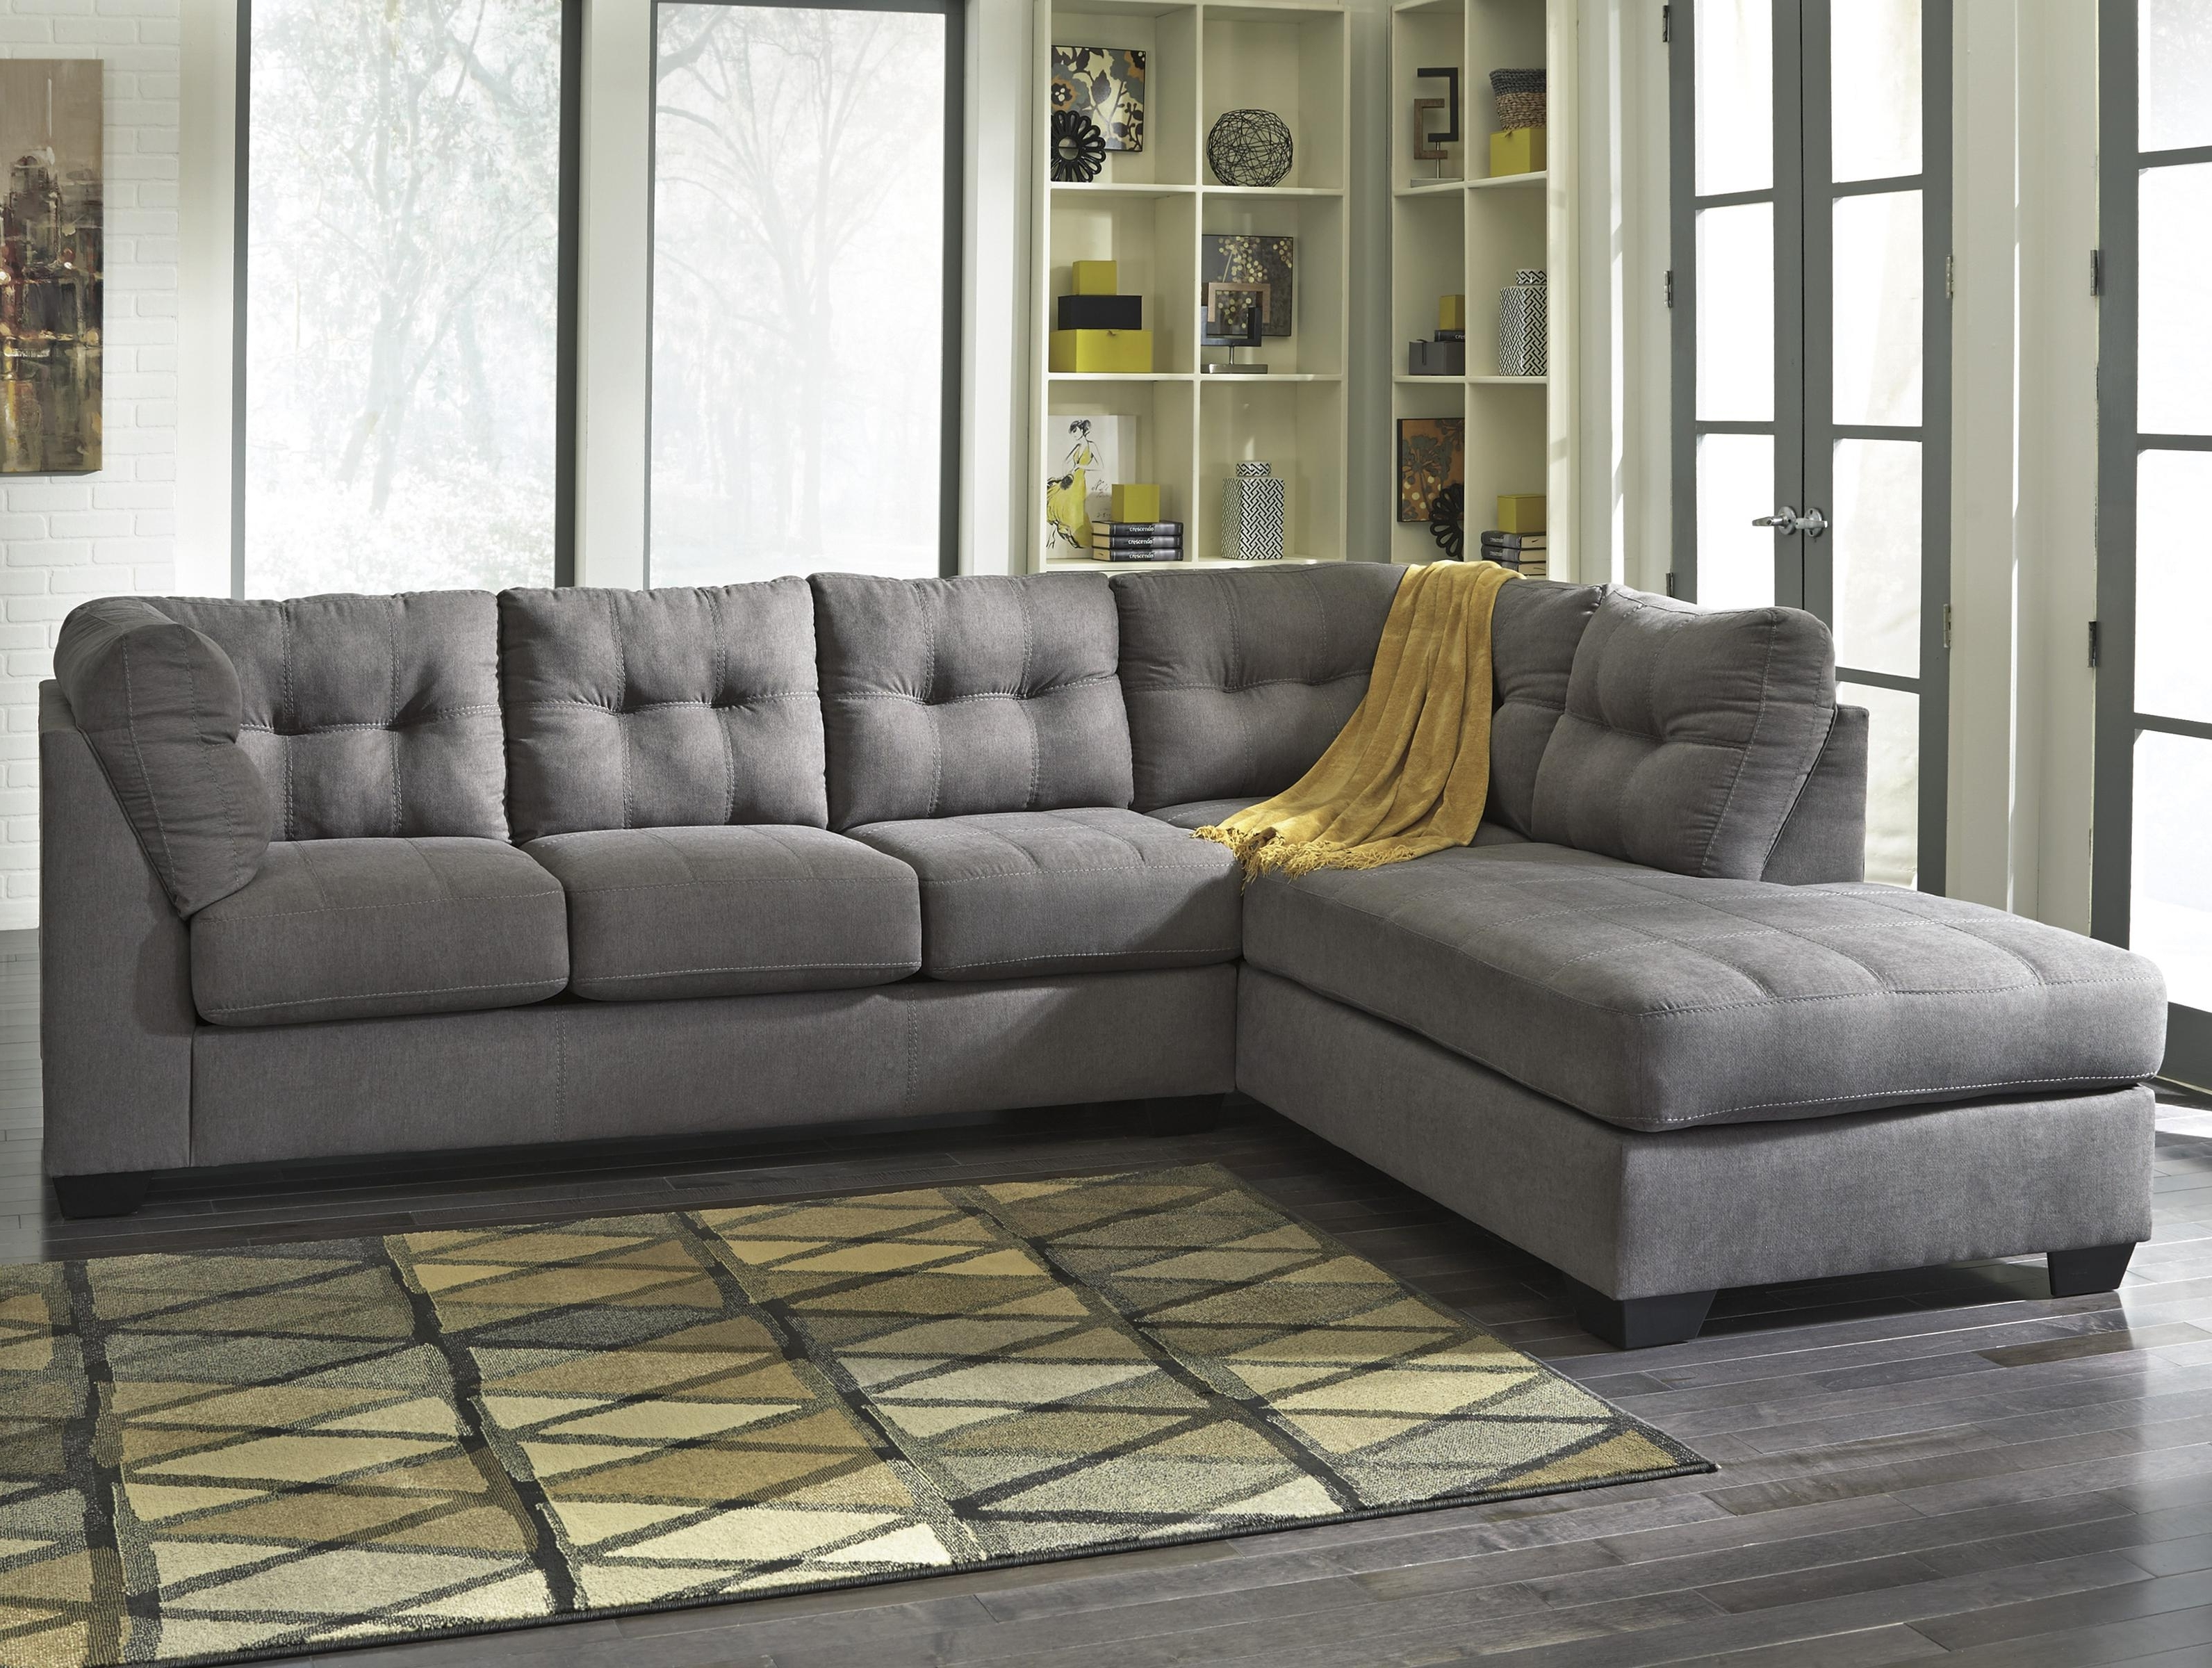 Benchcraftashley Maier – Charcoal 2 Piece Sectional With Left Regarding Most Up To Date Nashville Sectional Sofas (View 18 of 20)